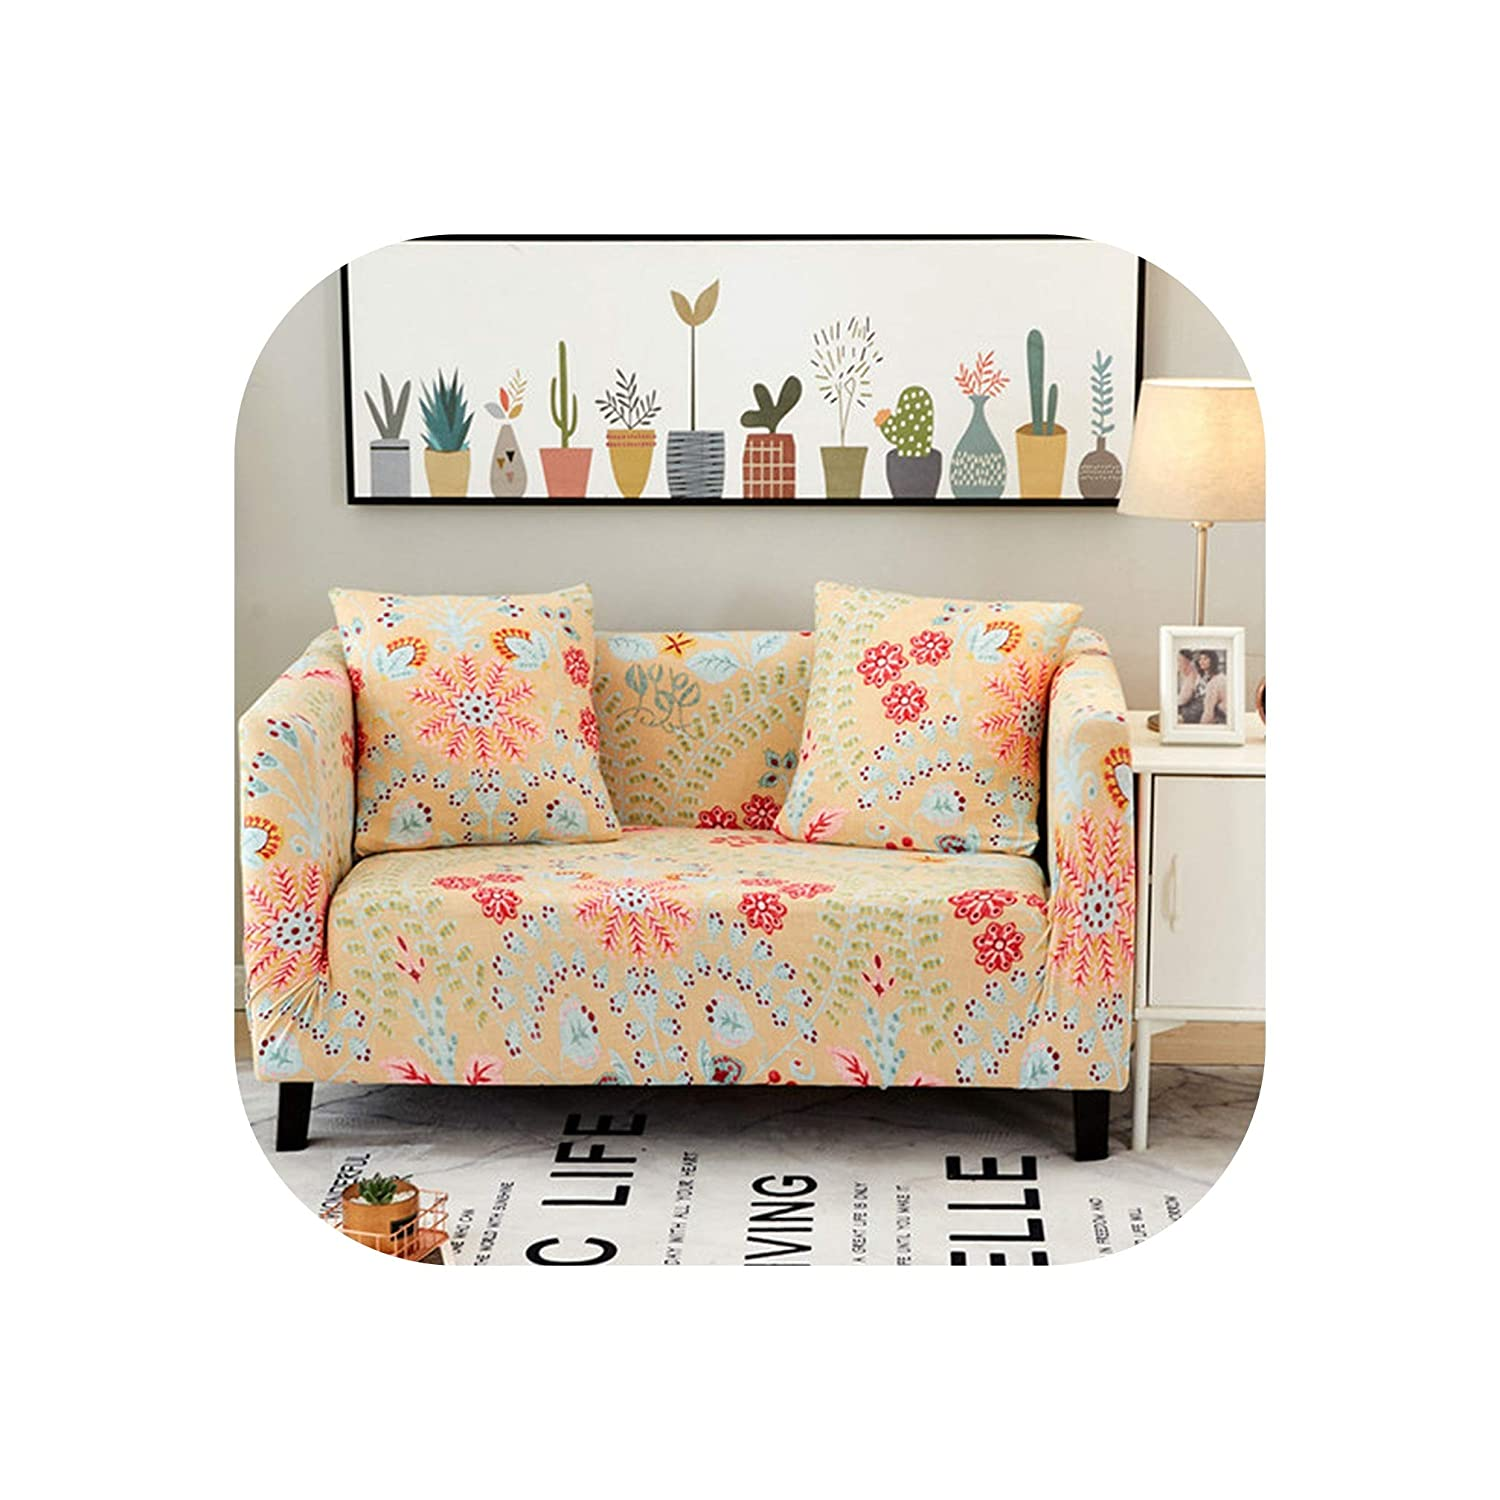 Superb Amazon Com The Fairy Elastic Sofa Cover Universal Tight Unemploymentrelief Wooden Chair Designs For Living Room Unemploymentrelieforg